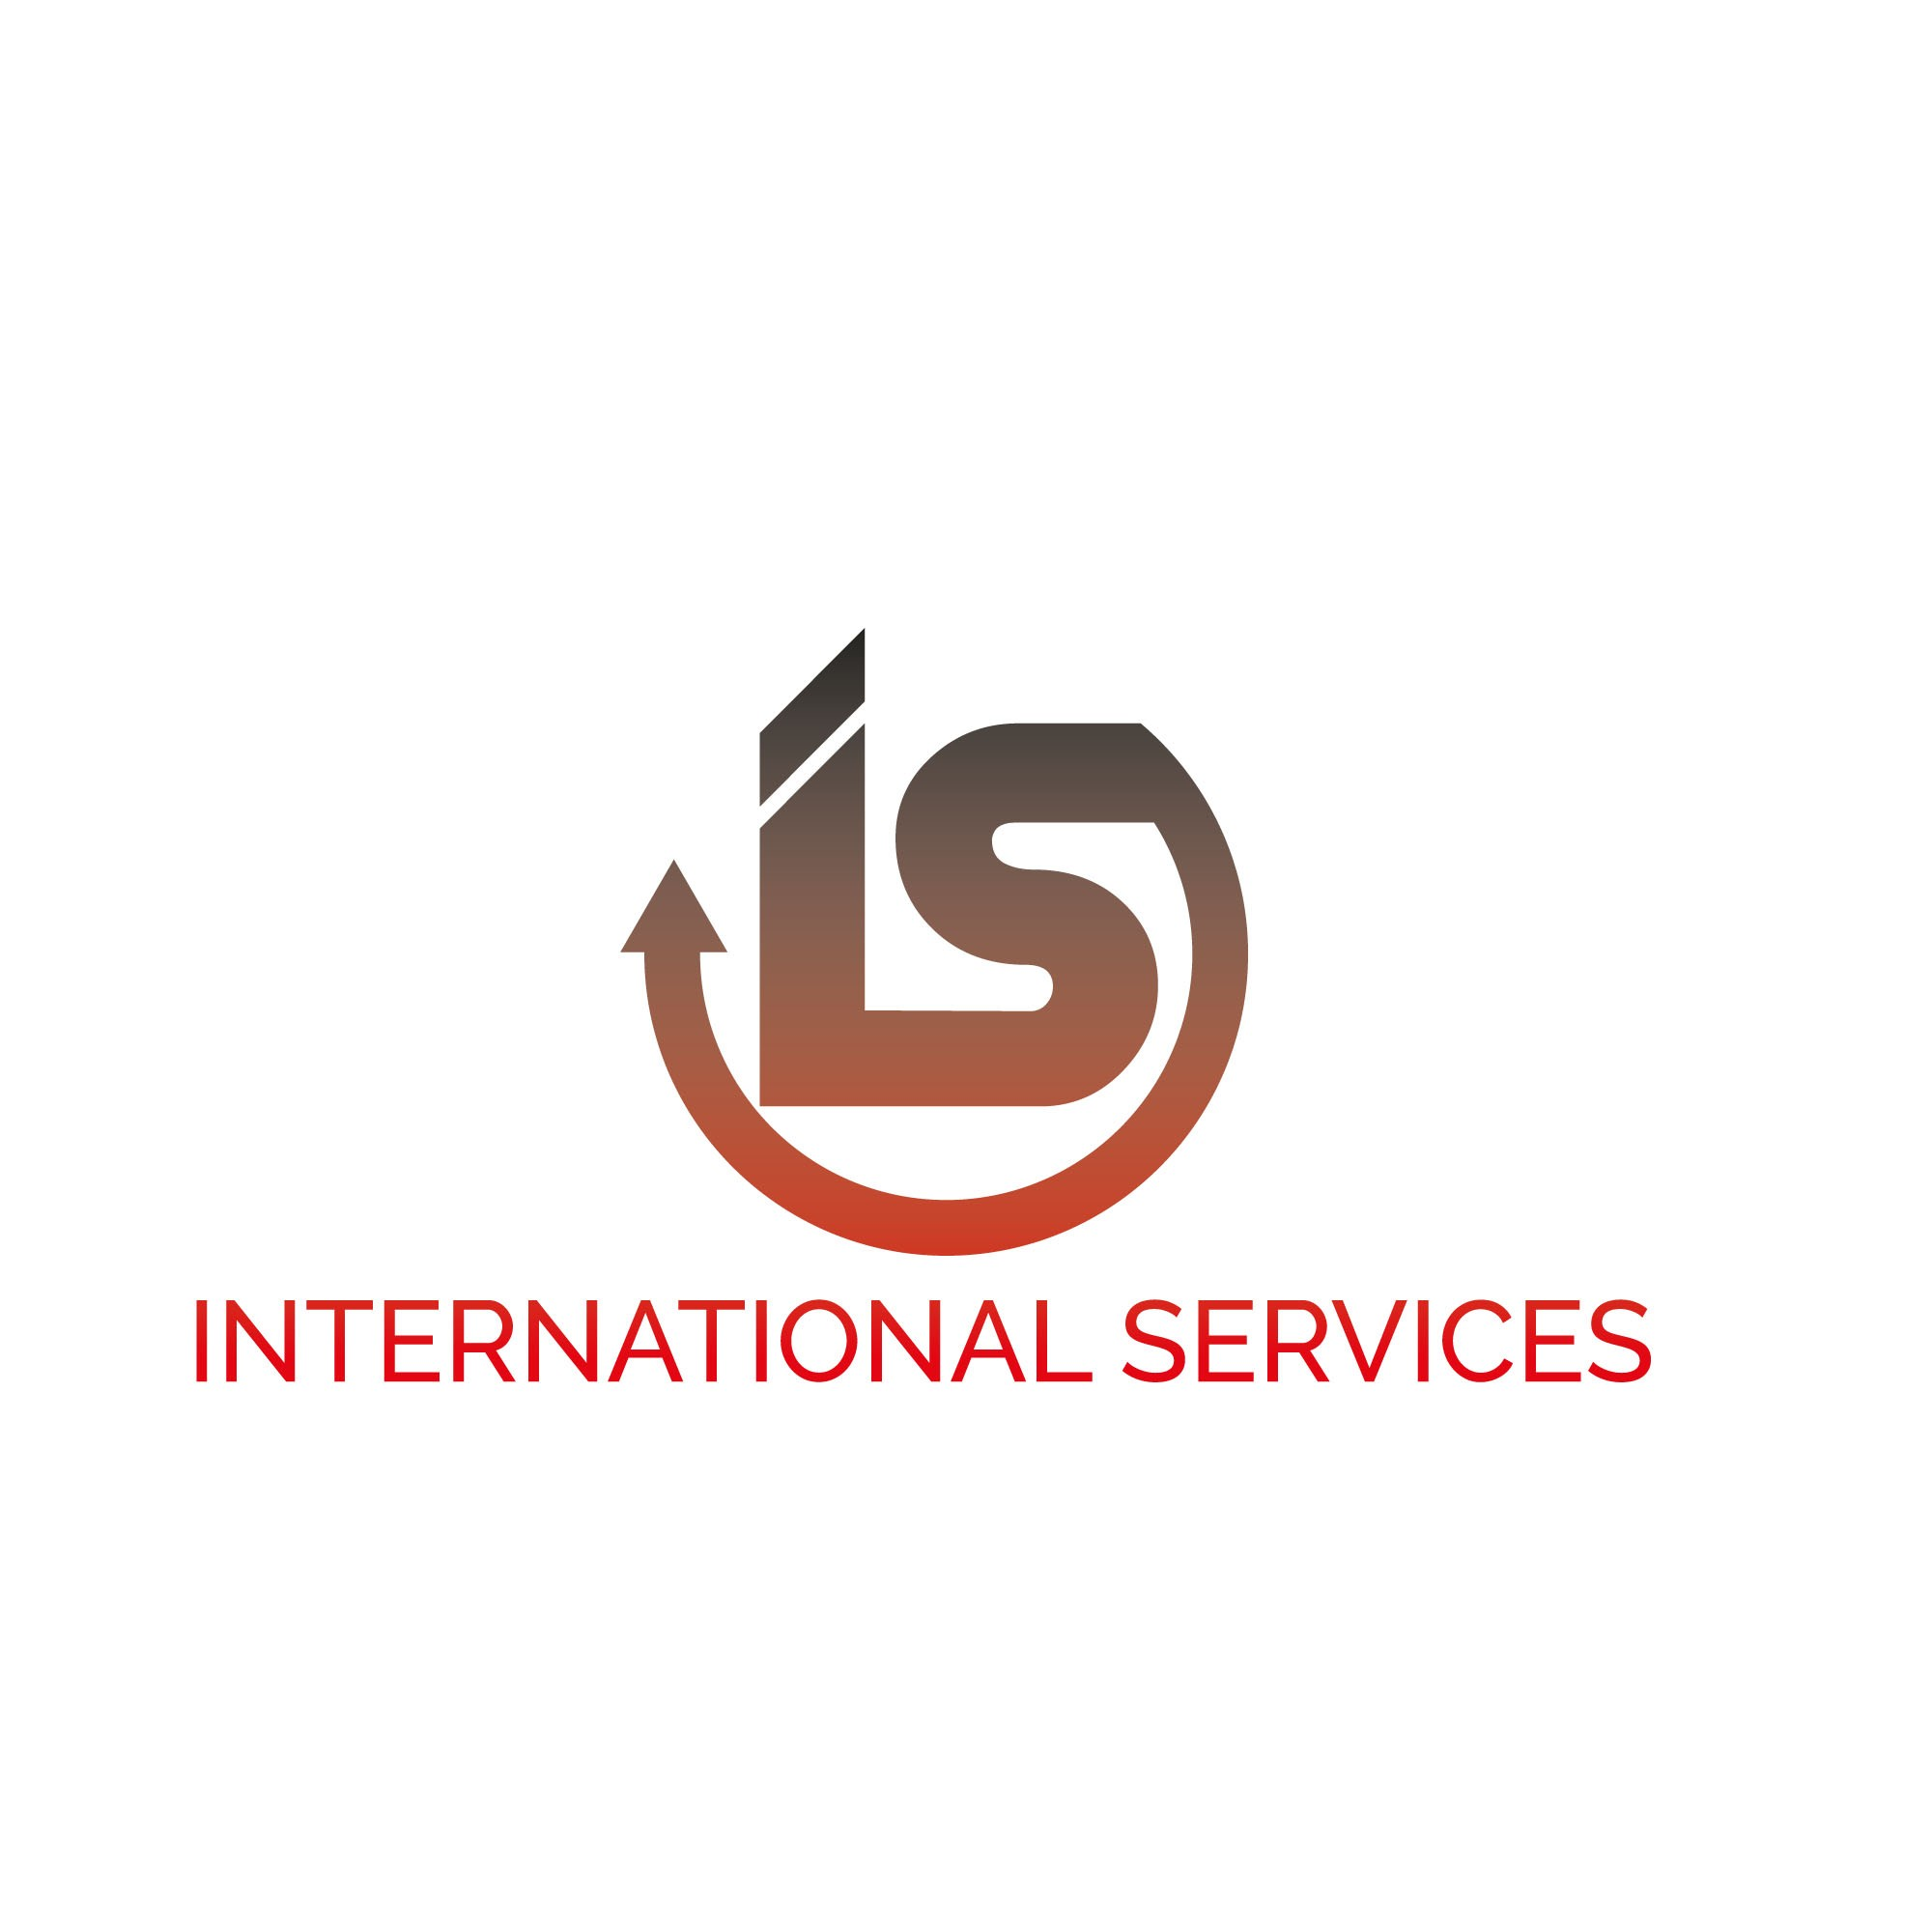 international services Company's logo